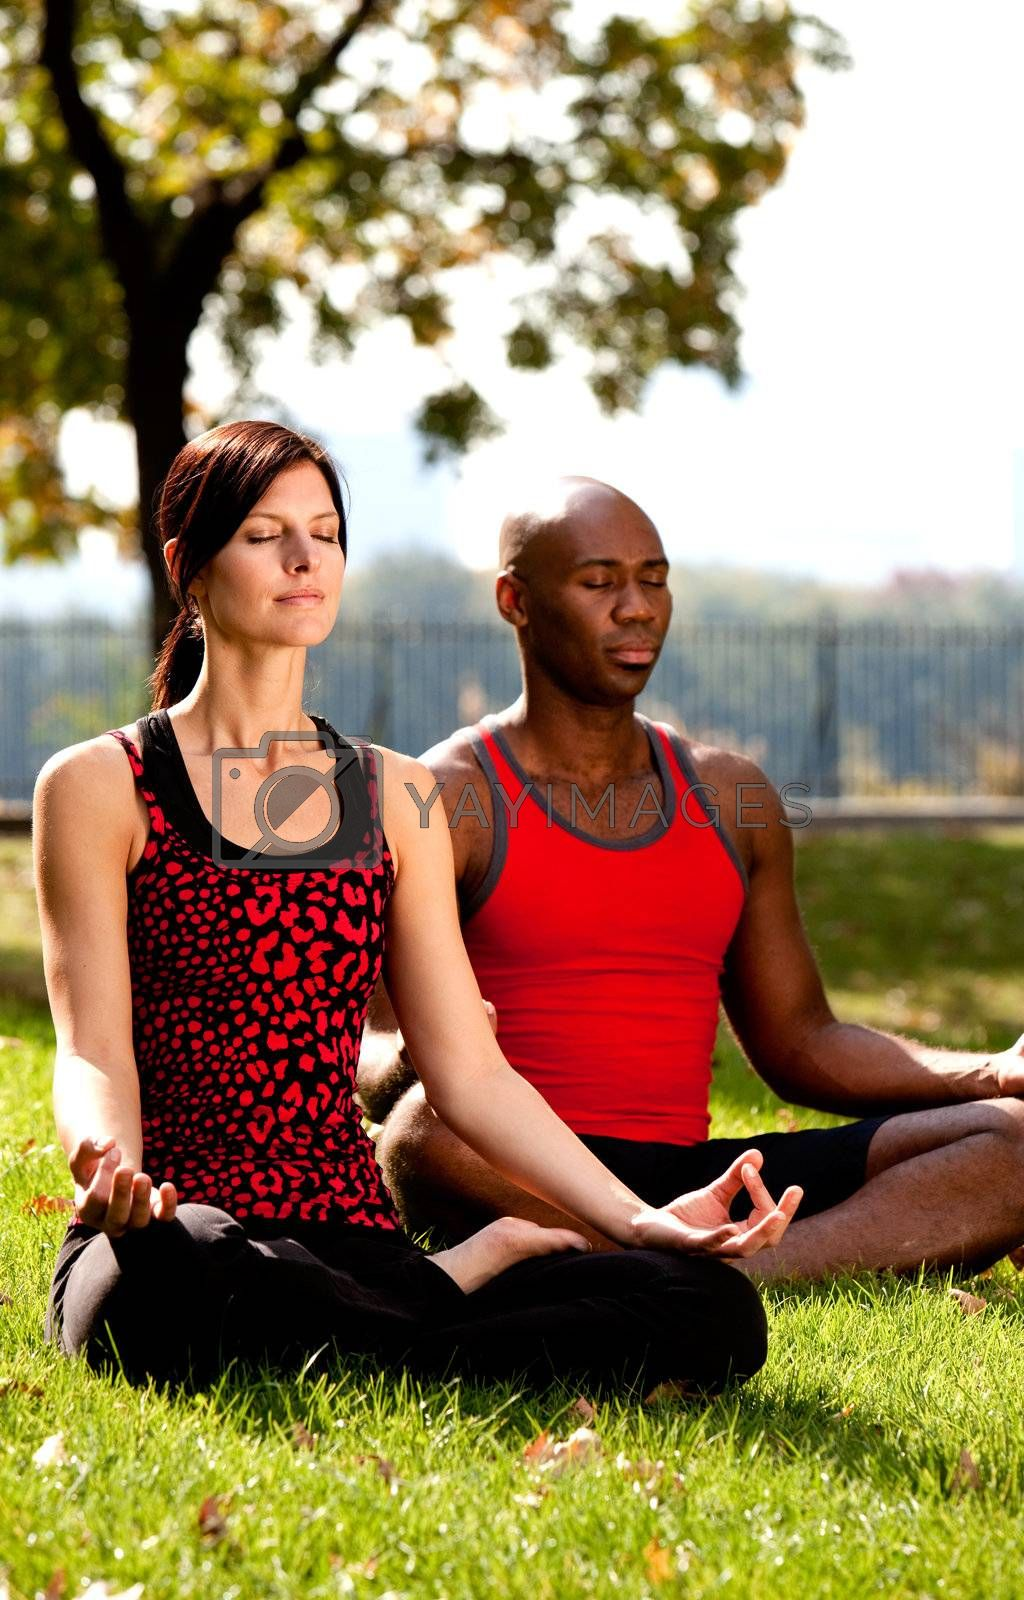 Two people meditating in a city park on a sunny day